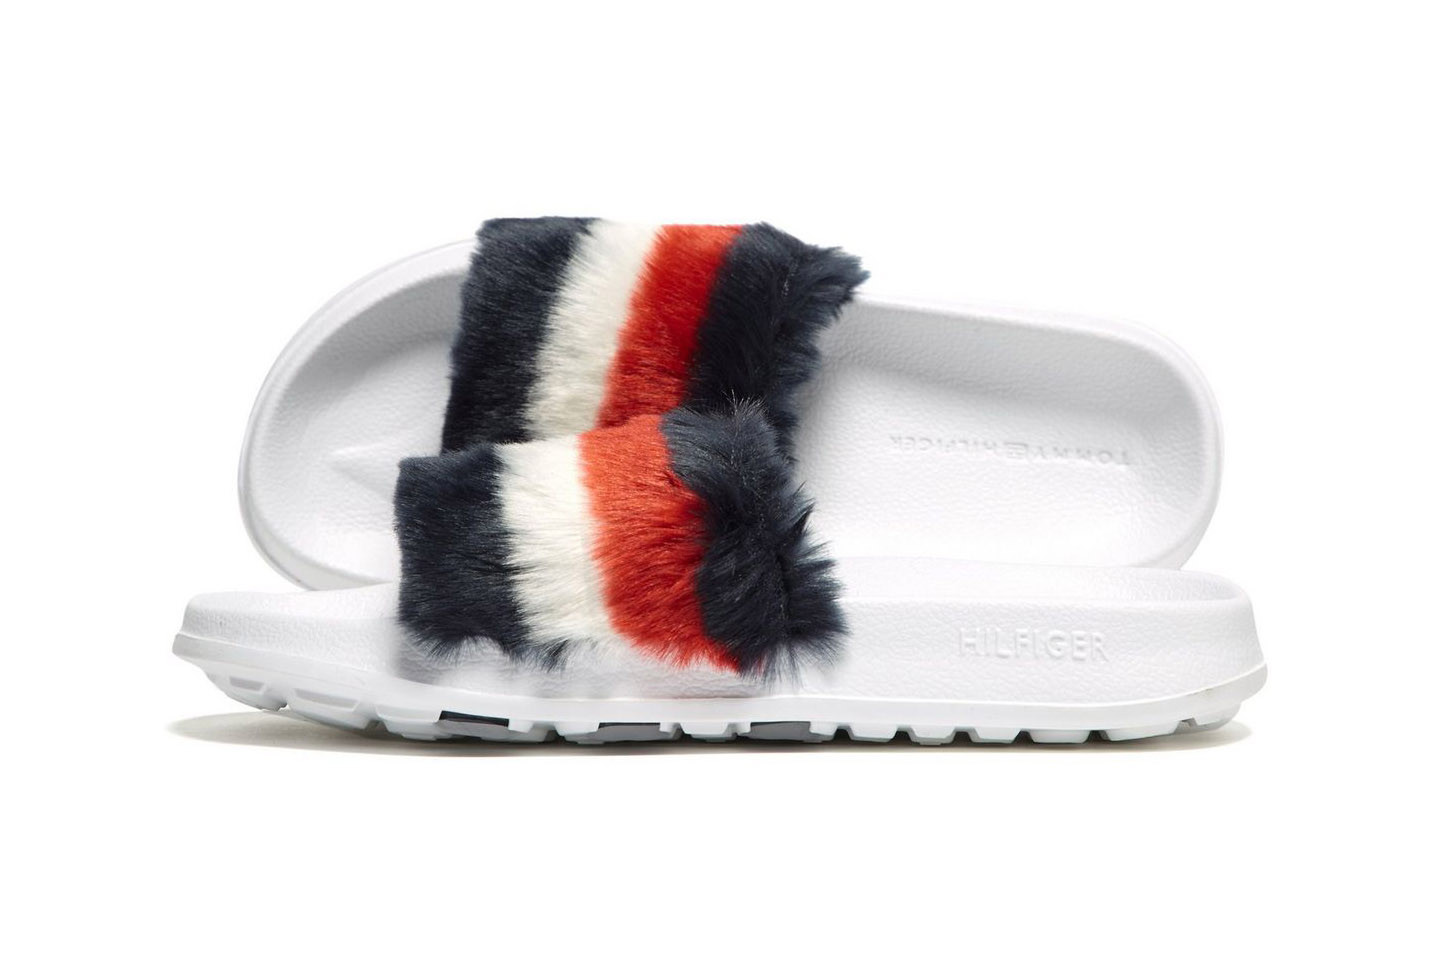 Tommy Hilfiger Releases Fluffy Mae Pool